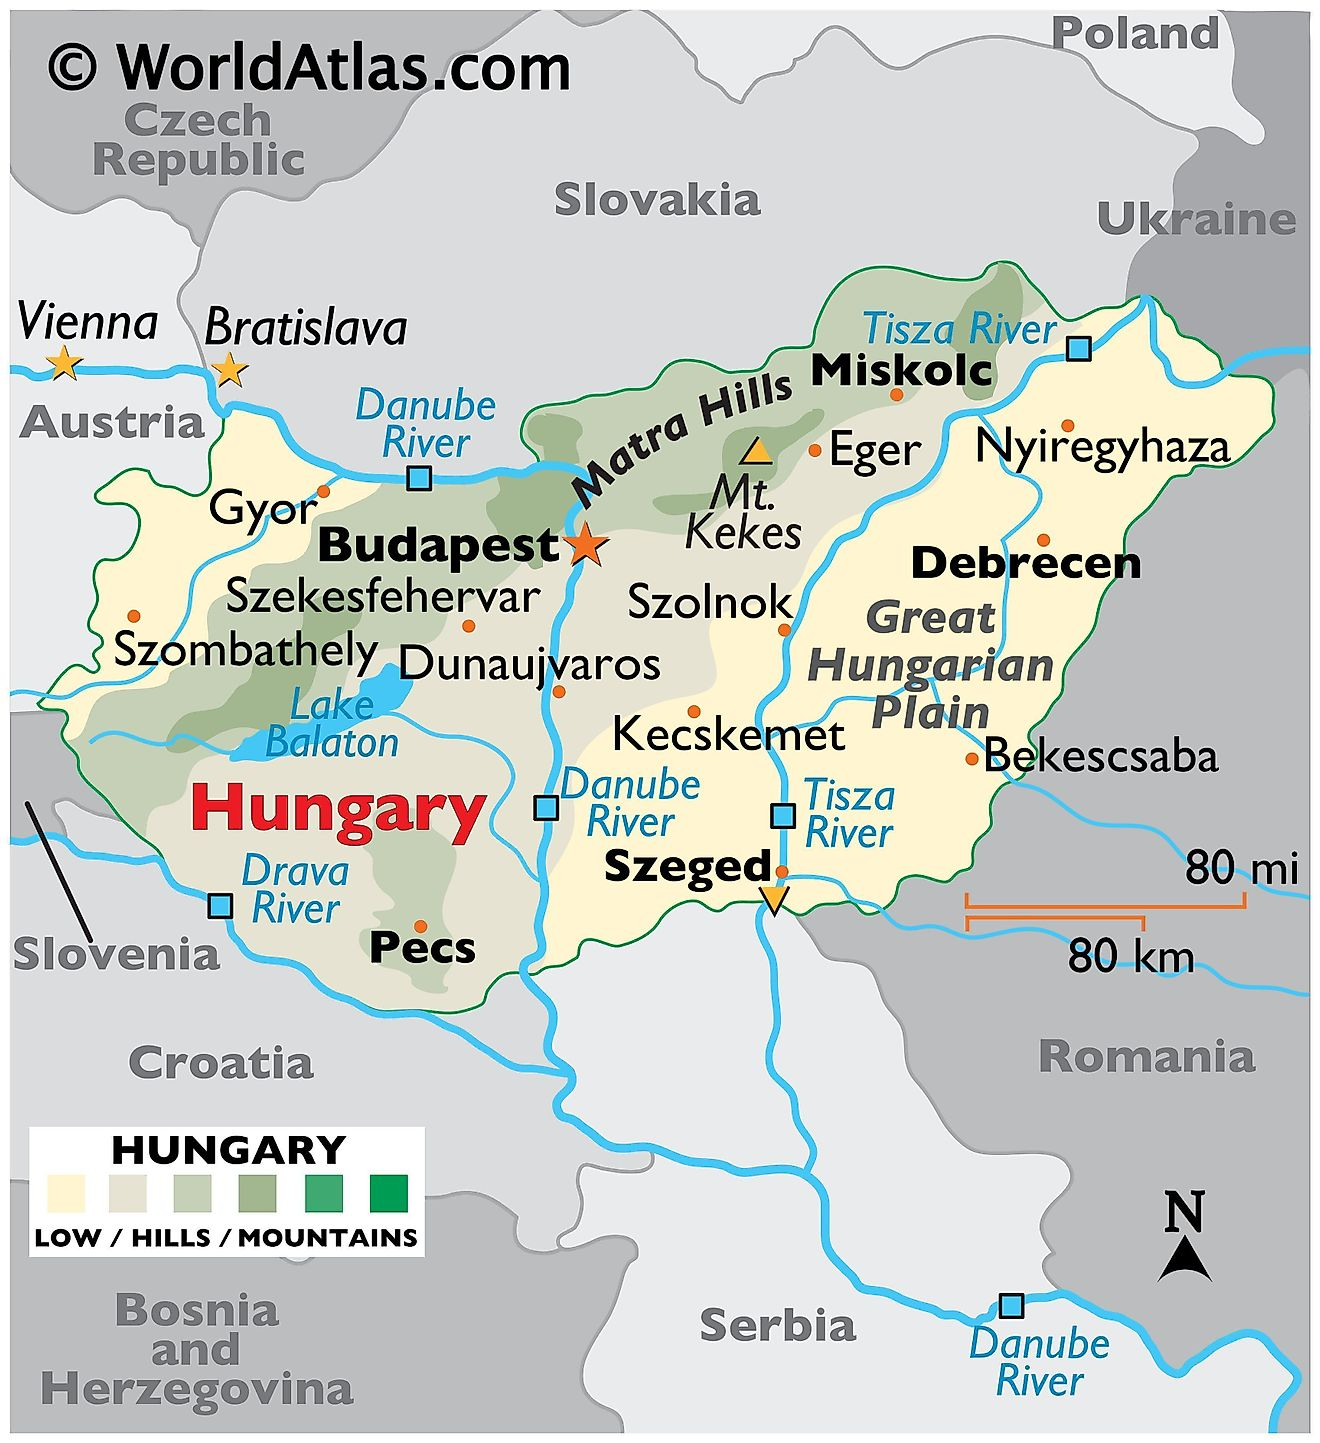 Physical Map of Hungary showing terrain, mountains, extreme points, major rivers, Lake Balaton, important cities, international boundaries, etc.